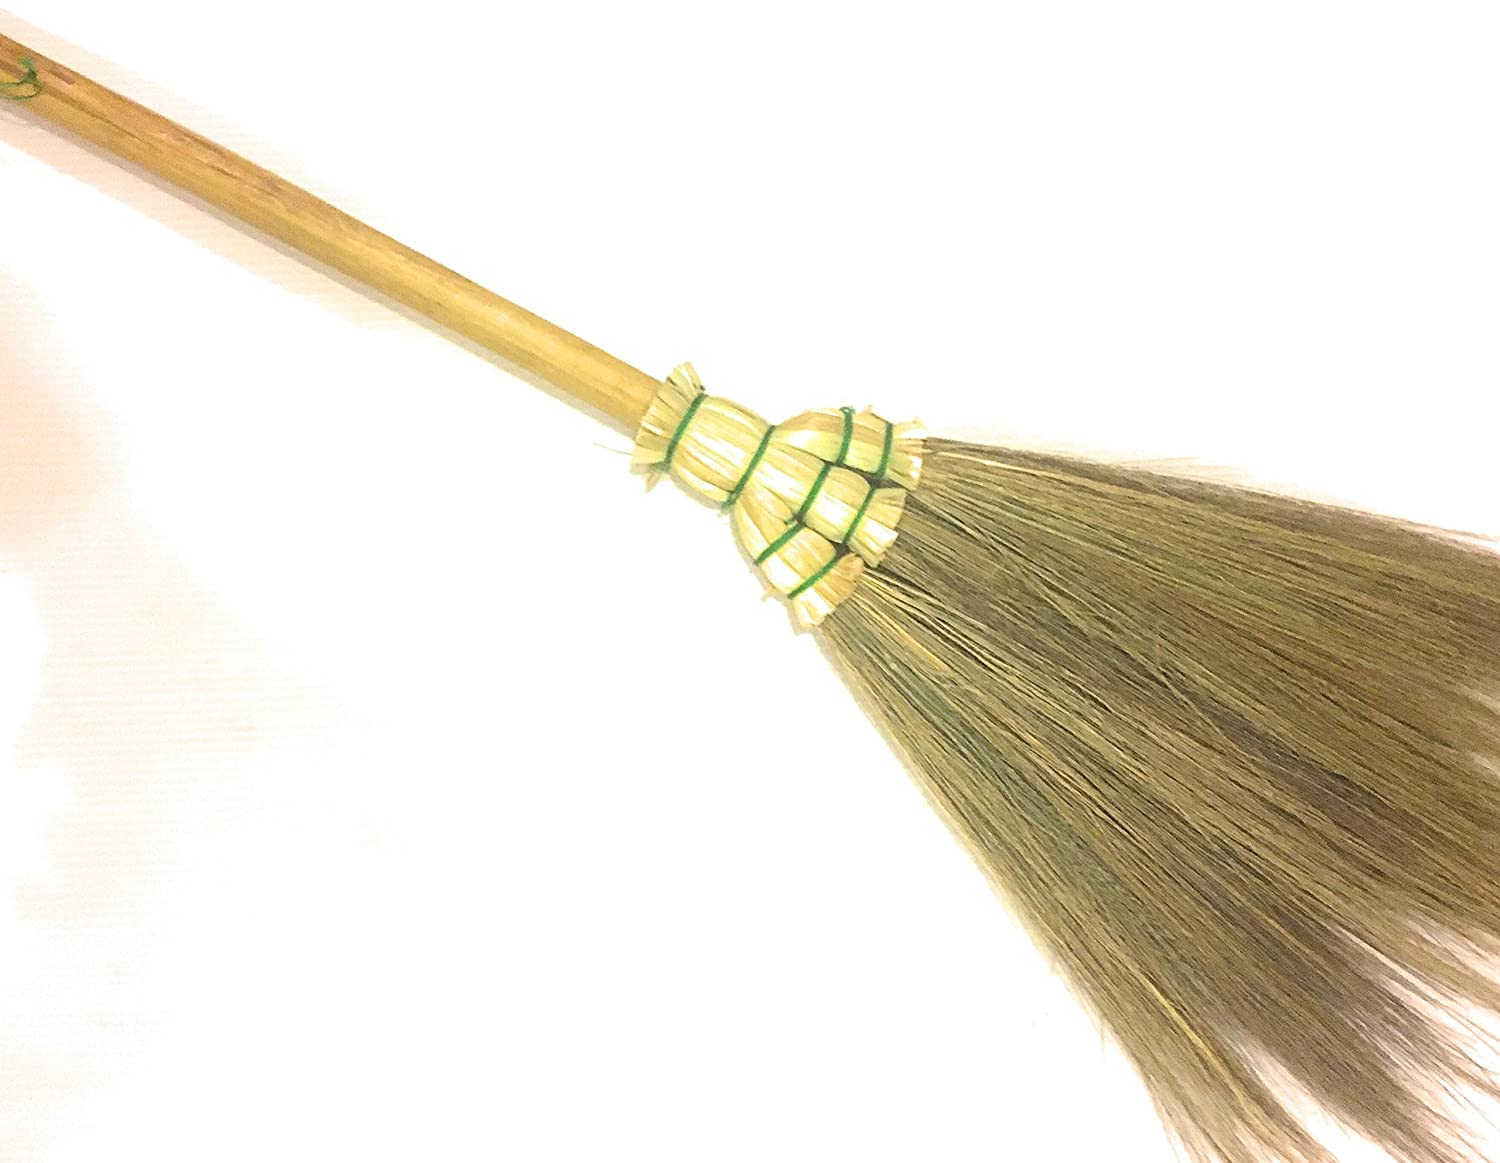 office car or any room cleaning Home decor vintage Thai Traditional Handmade Broom Grass bamboo handle Natural color length 28 Tiny broom Perfect for any kitchen 1pc restaurant